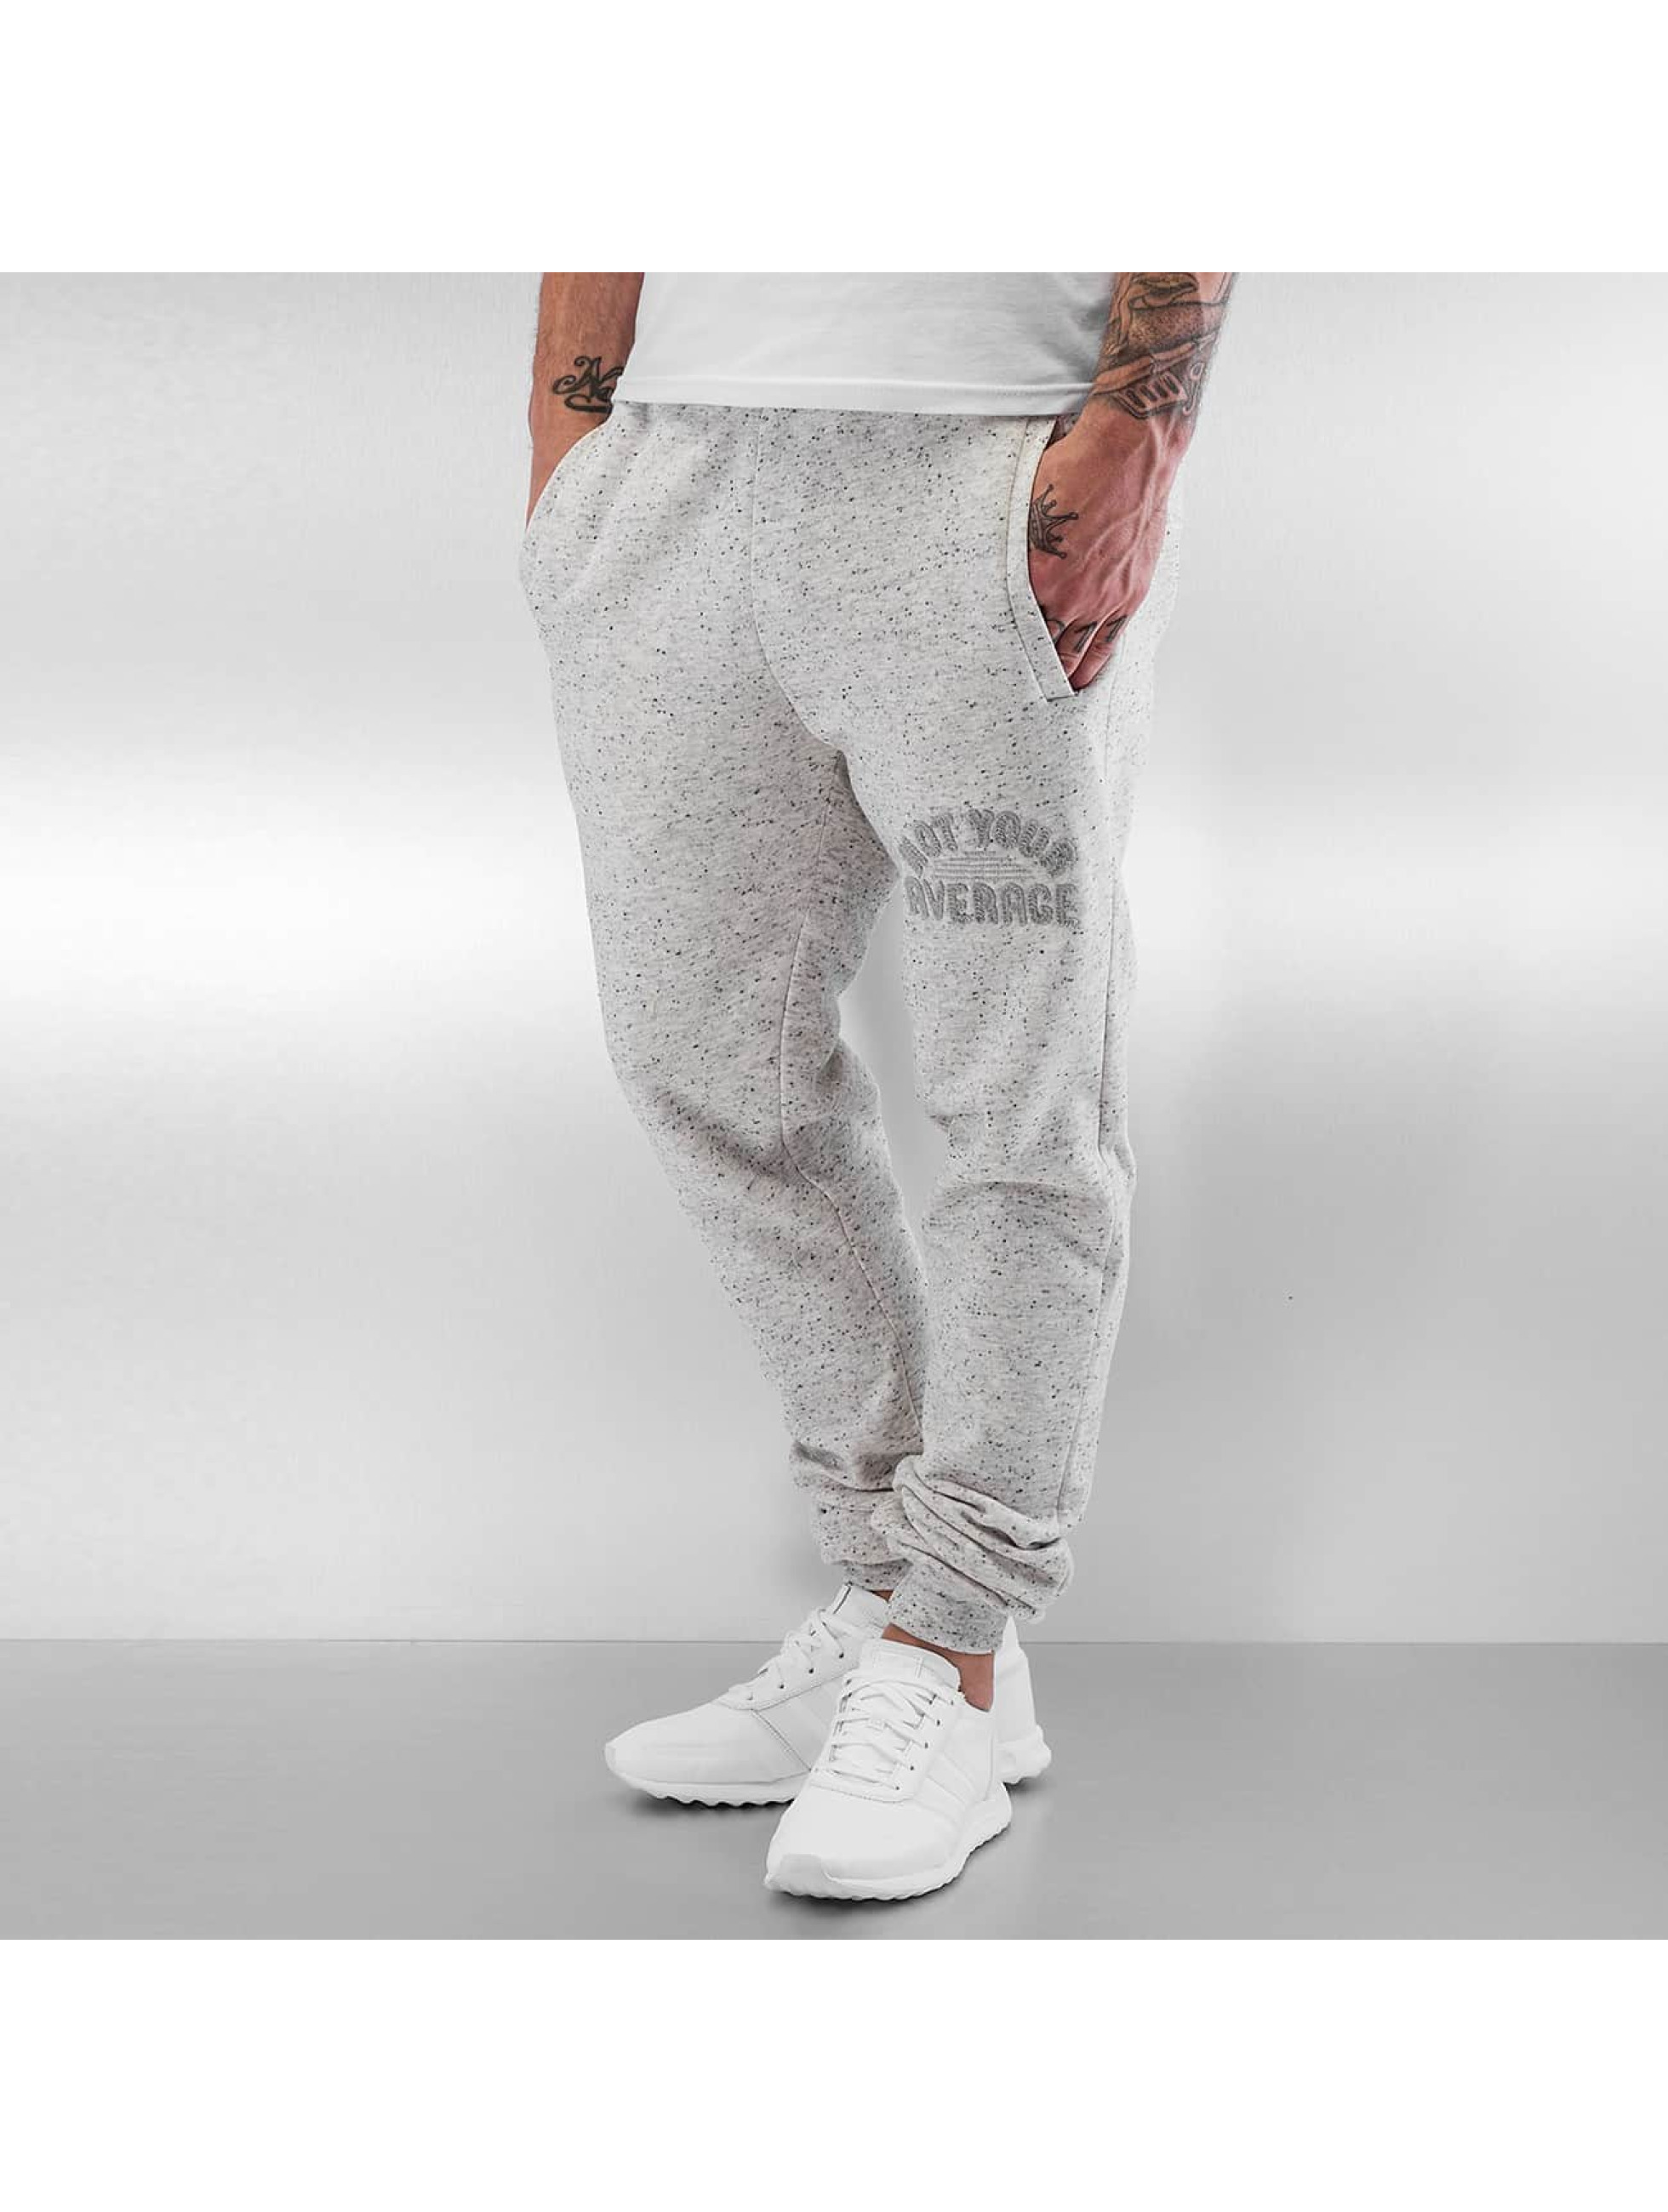 Pelle Pelle joggingbroek Not Your Average grijs